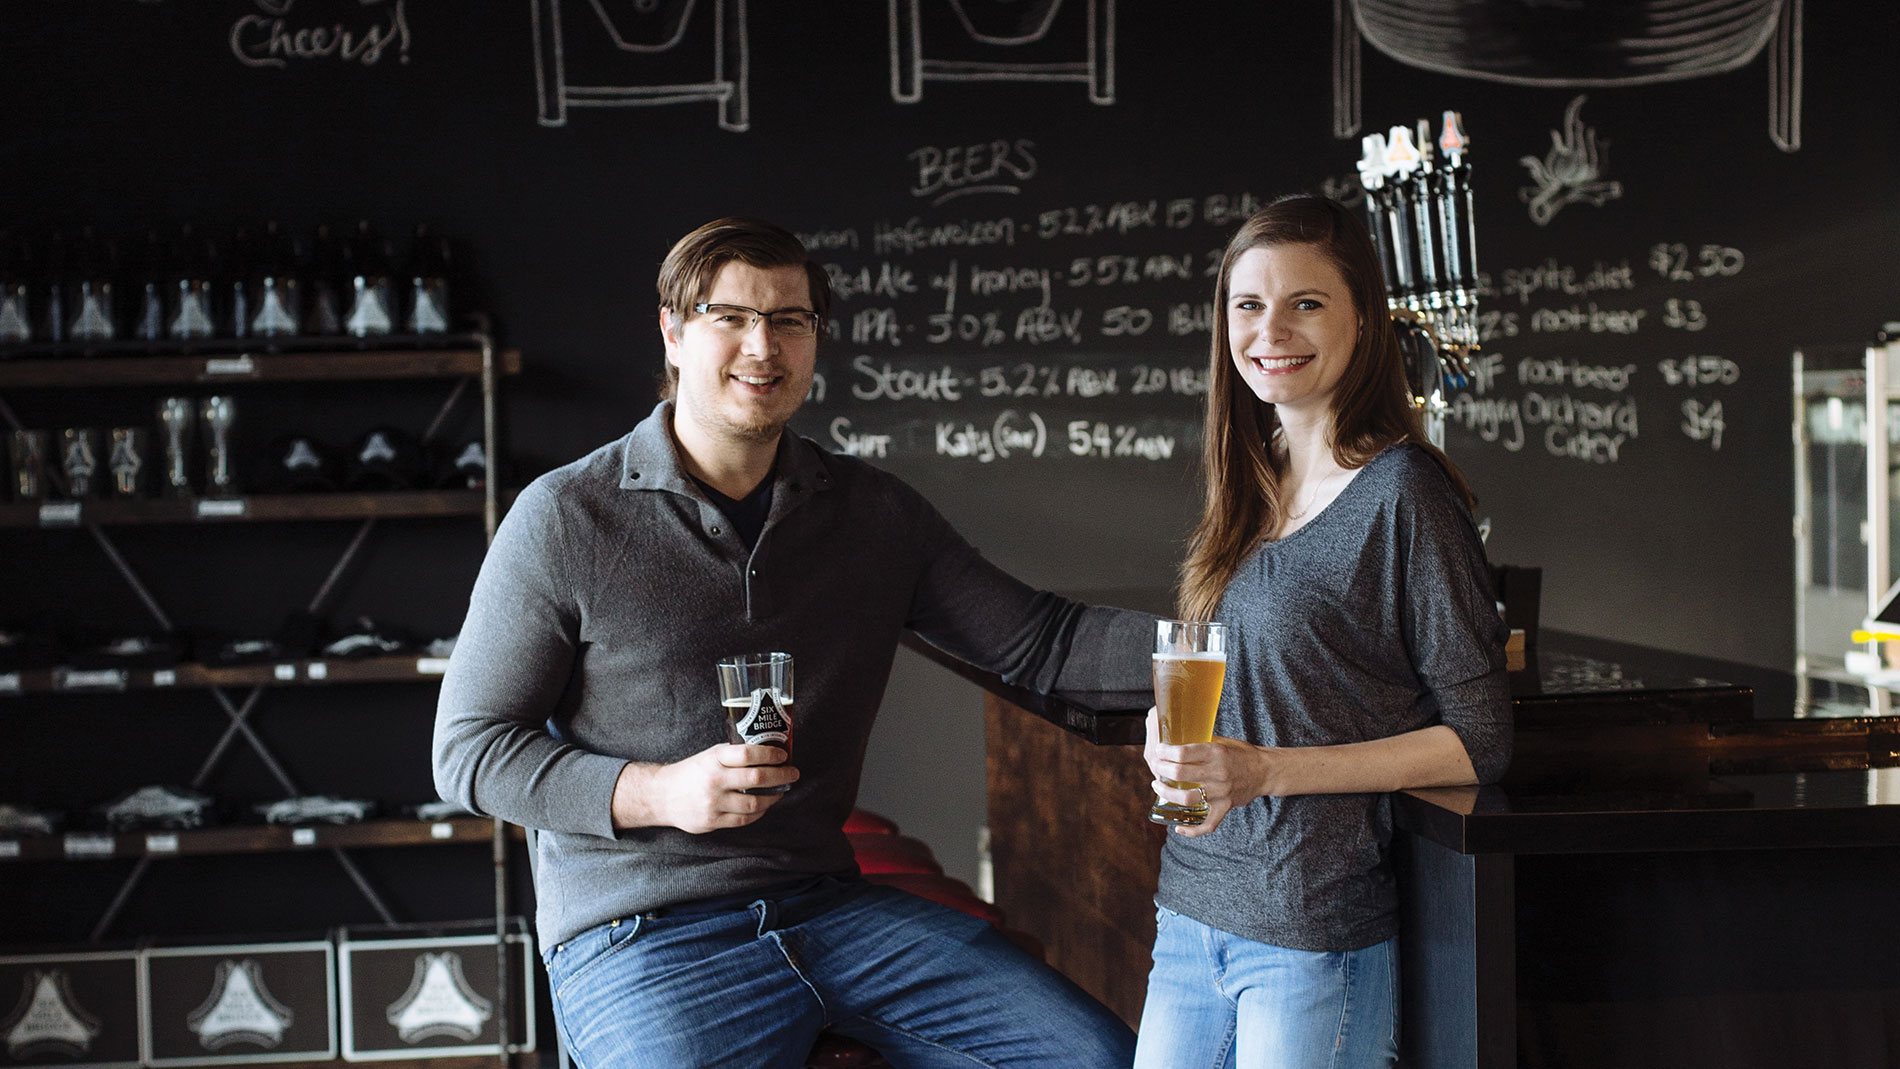 a man and woman drinking beer